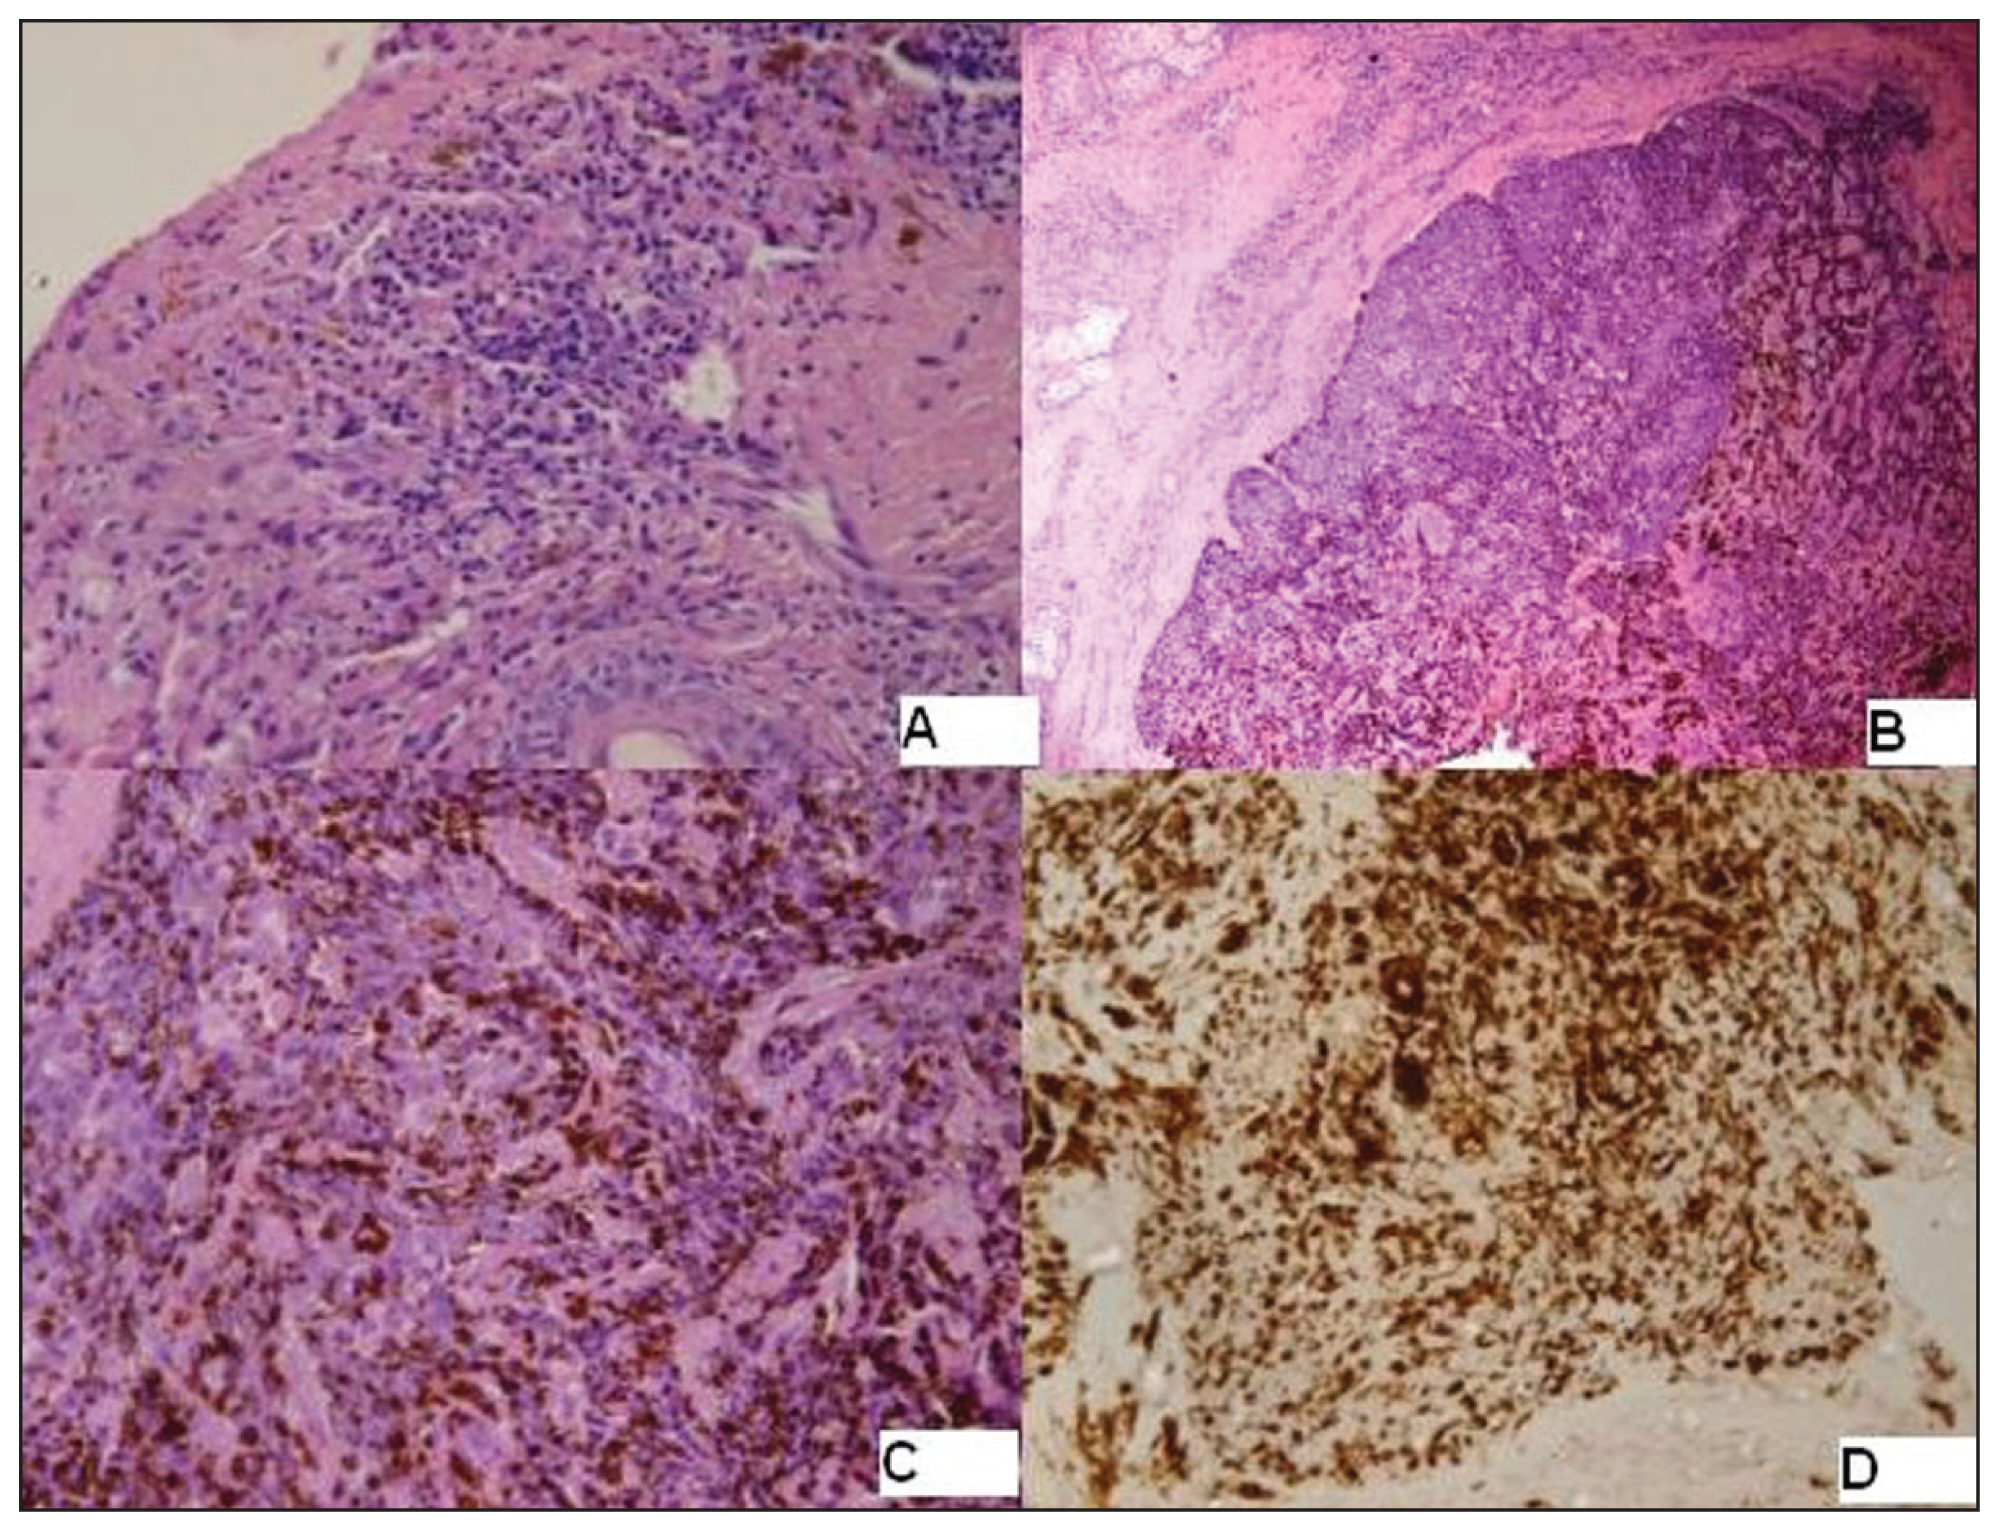 Malignant melanoma and basal cell carcinoma of the face: a rare